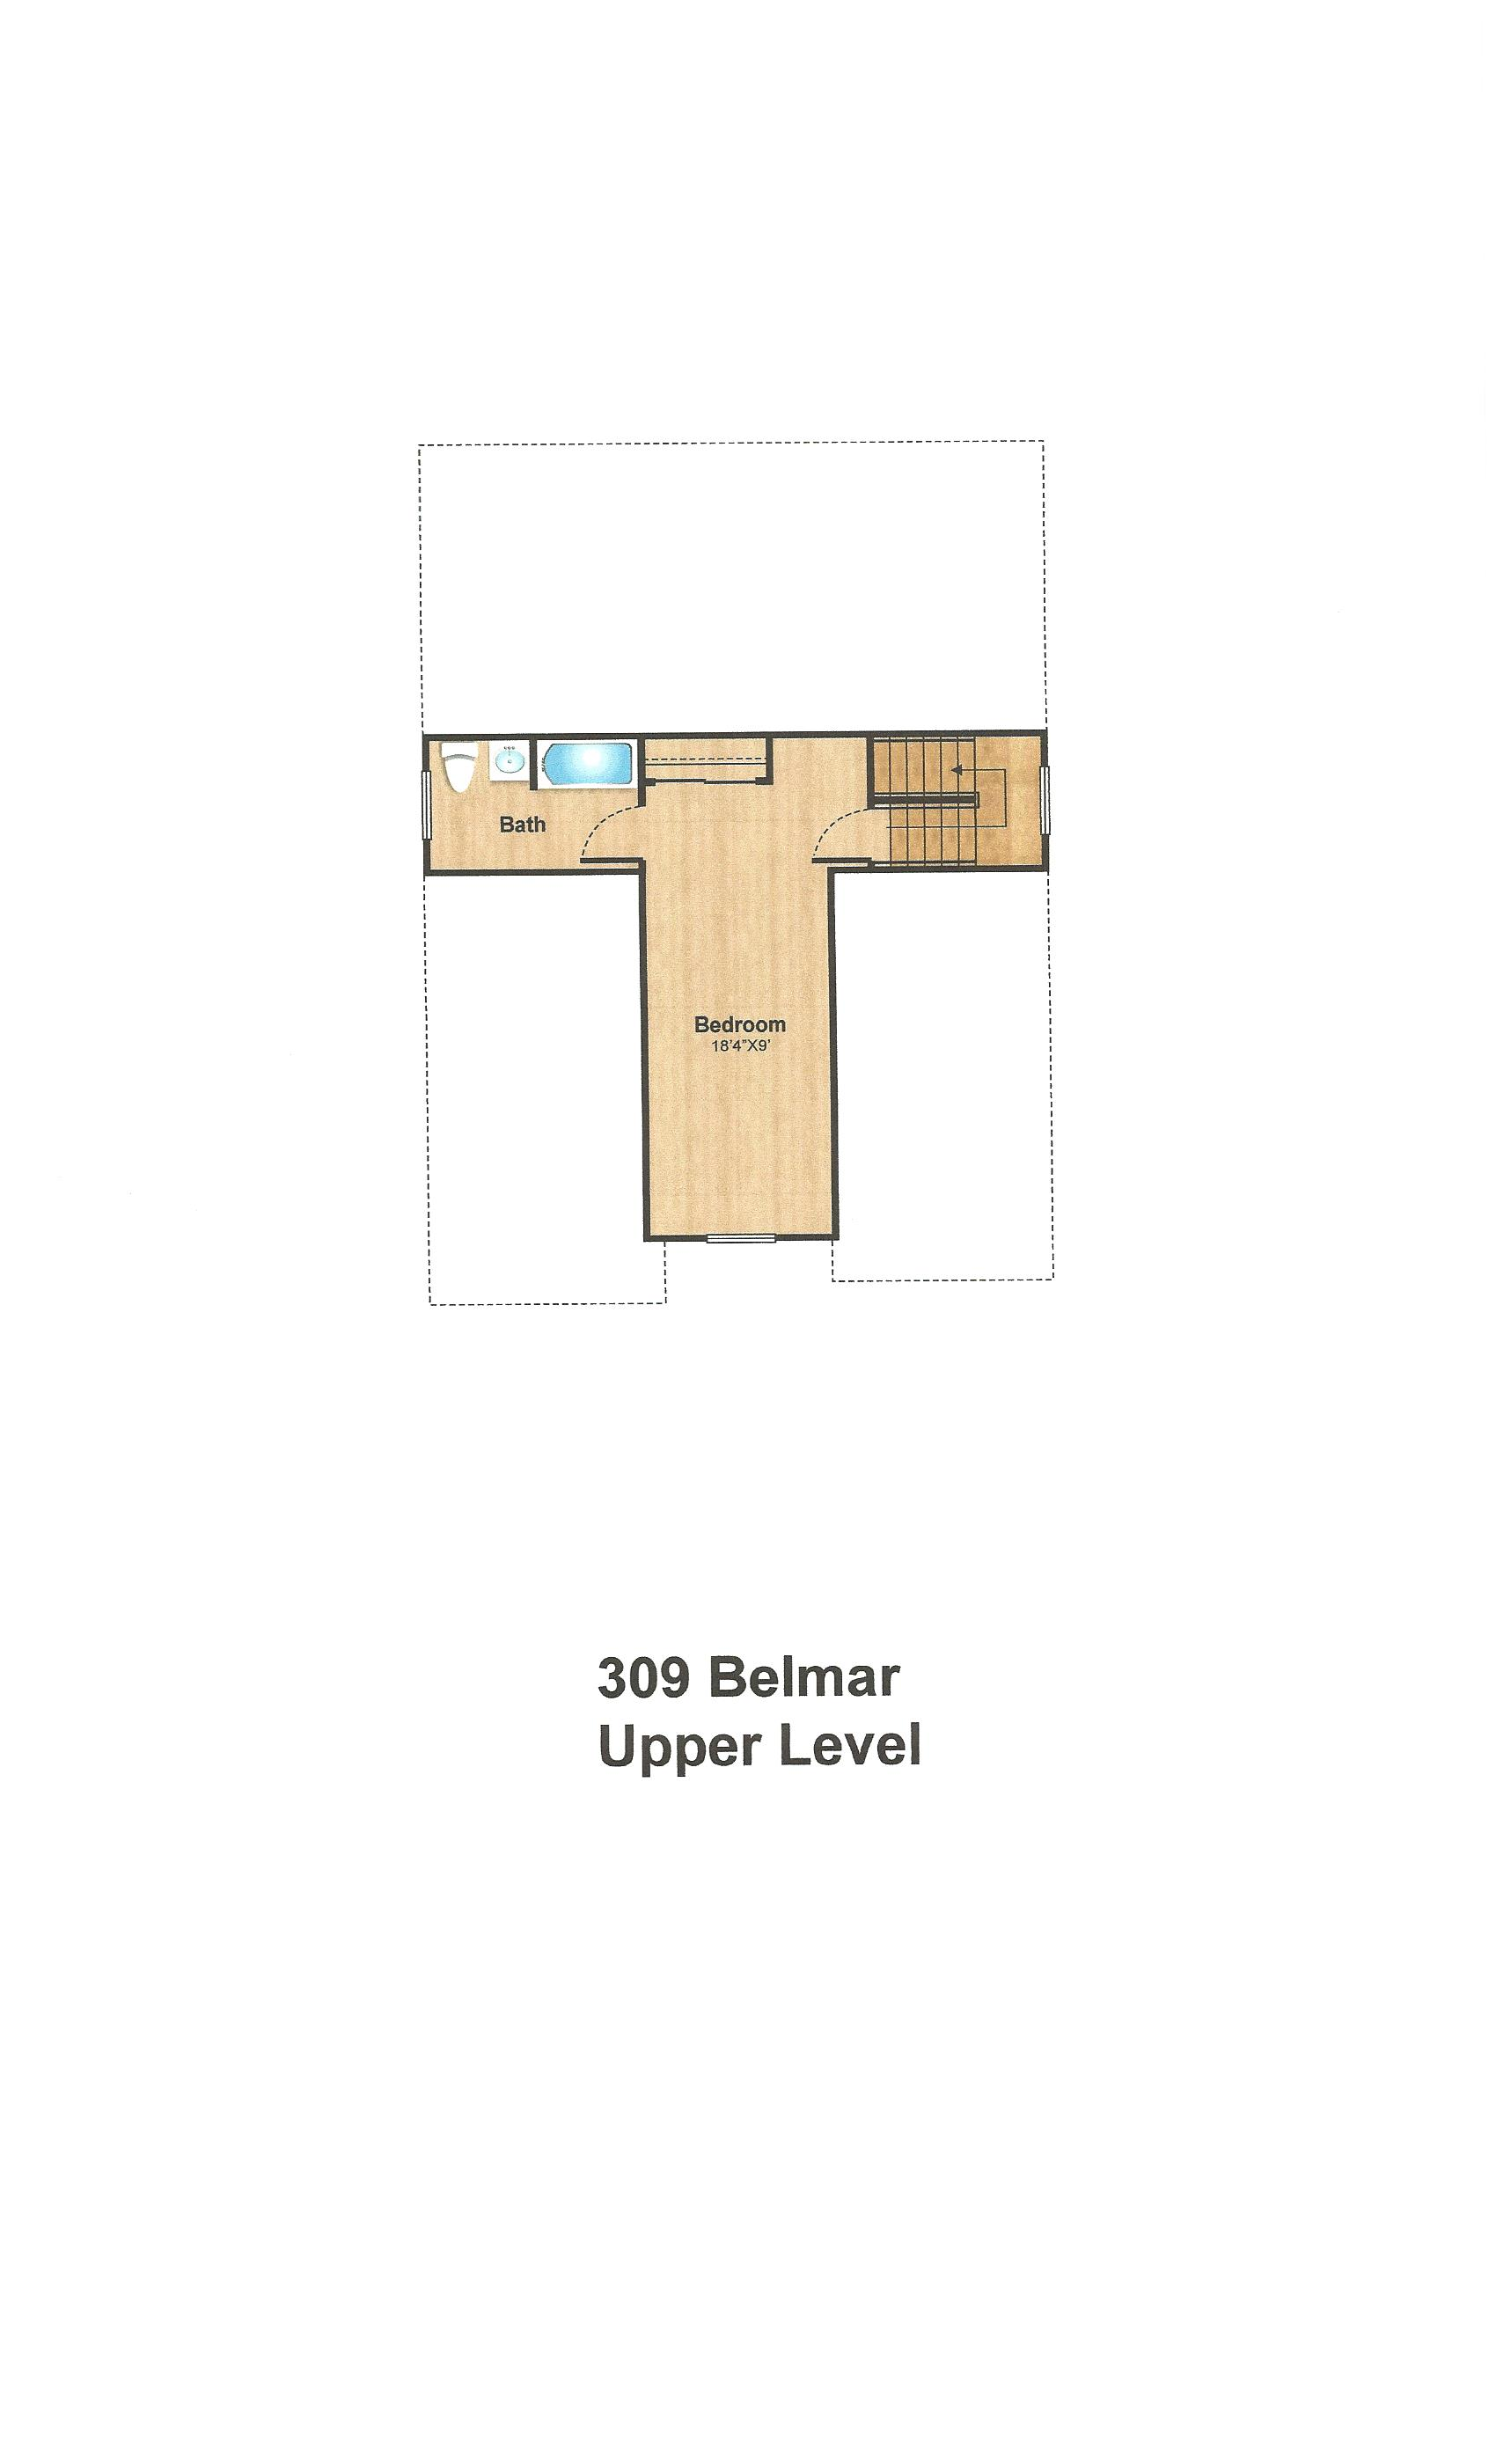 309 belmar third floor